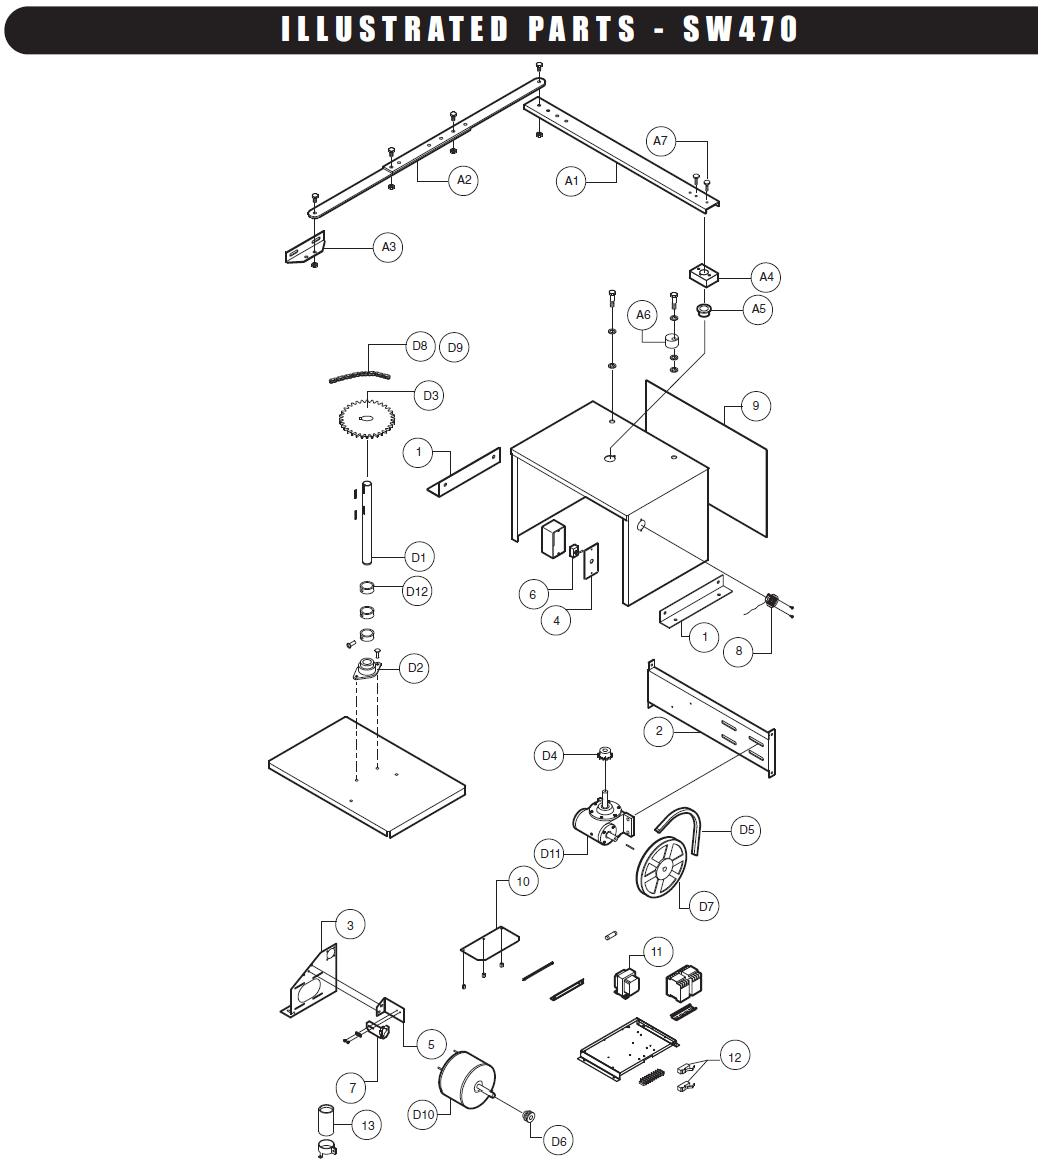 Liftmaster Gate Openner Schematics Trusted Wiring Diagrams Lift Master Schematic Sw470 Opener Parts Replacement 7 Wire